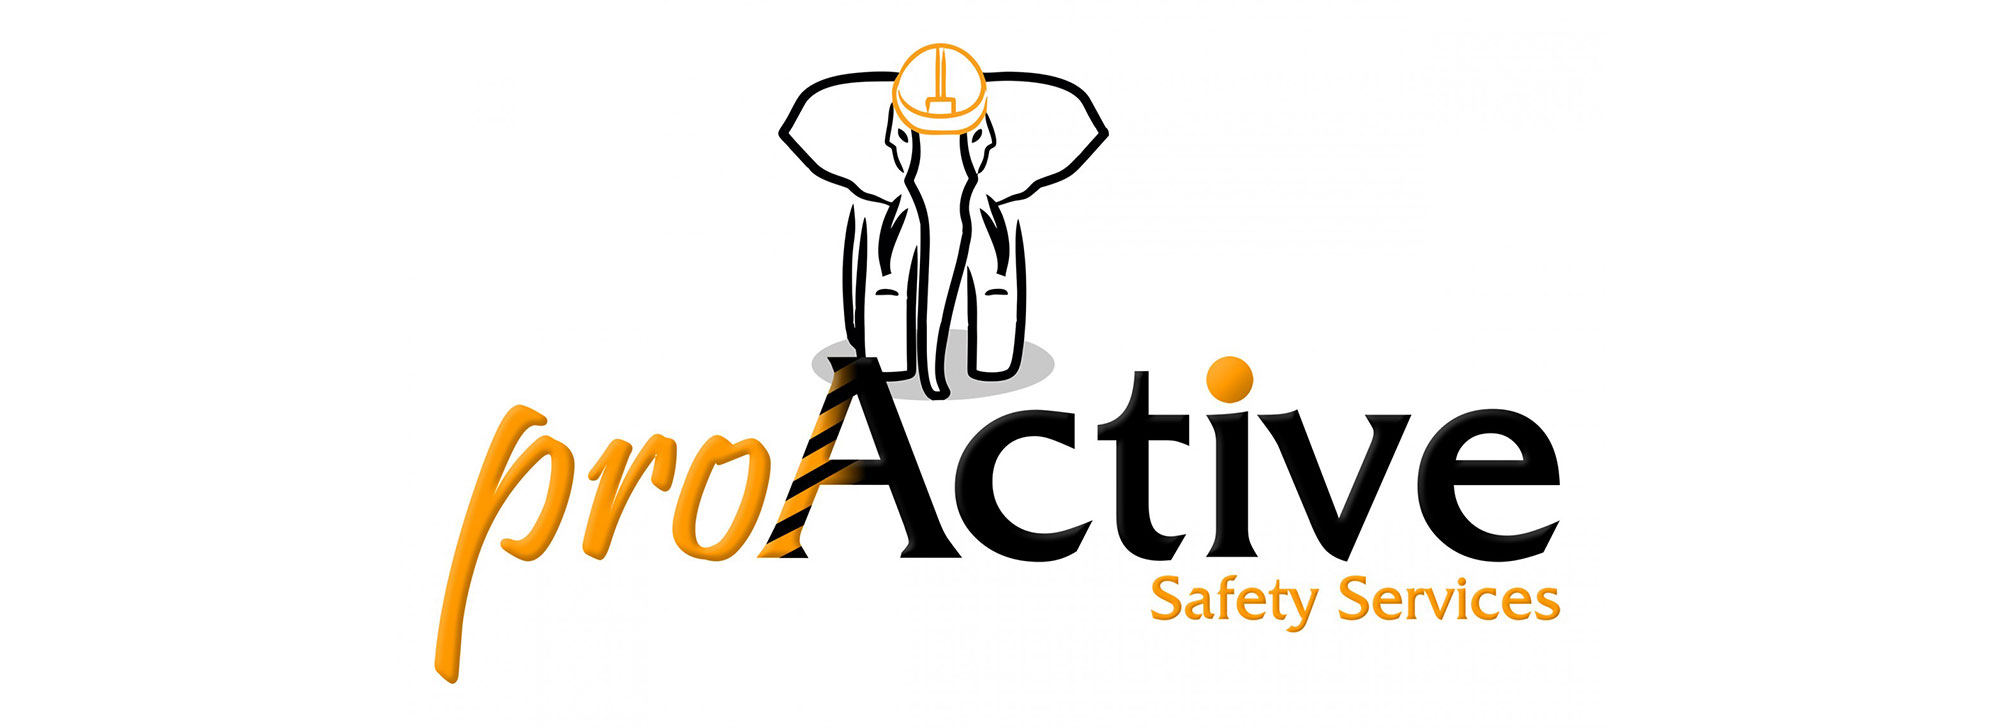 proActive Safety Services